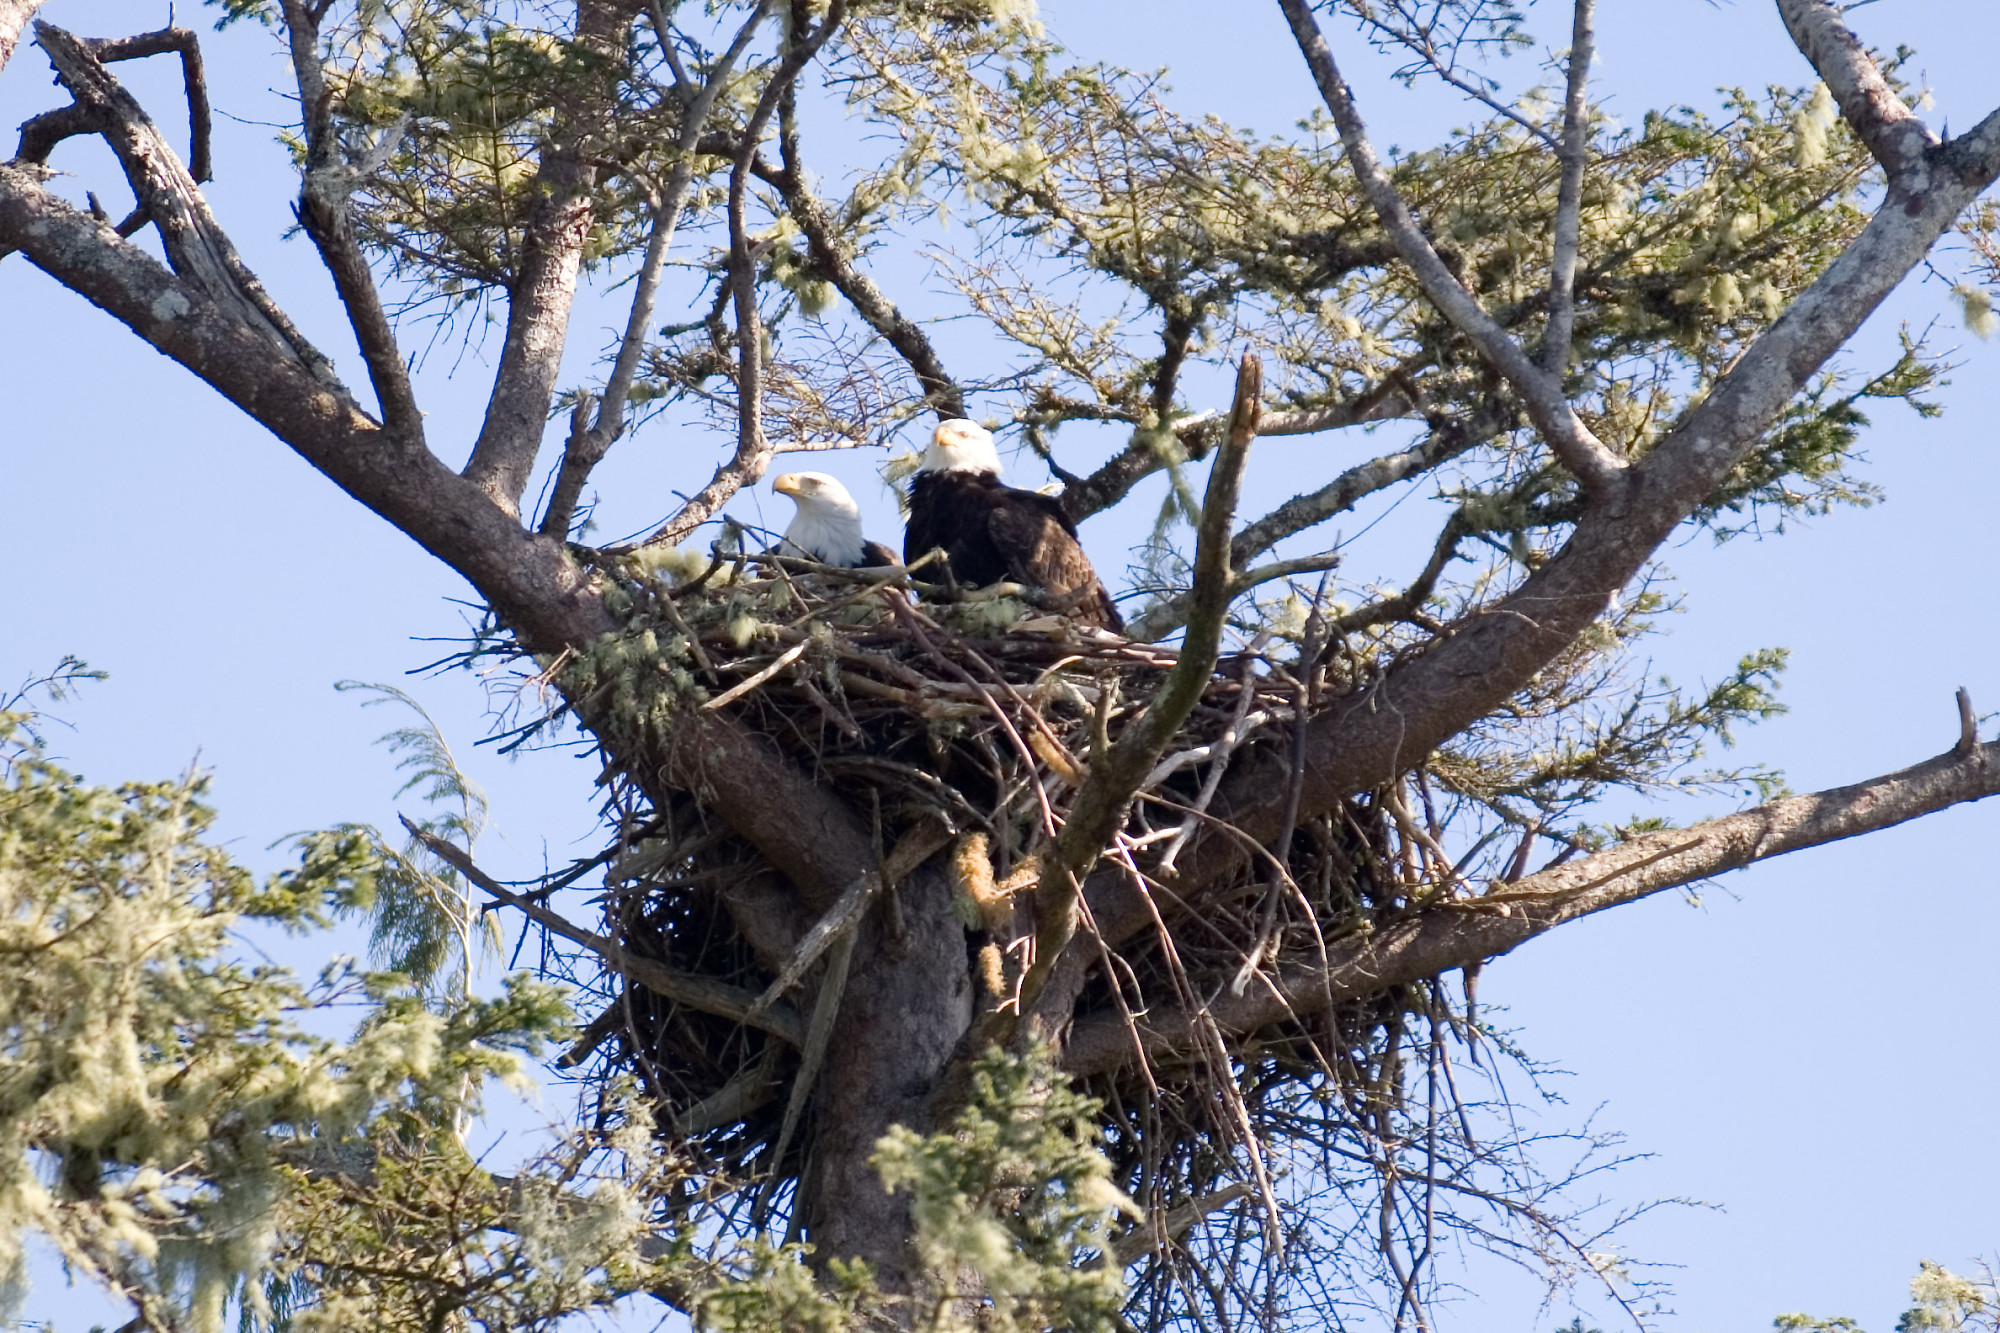 Pair Of Eagles In Nest